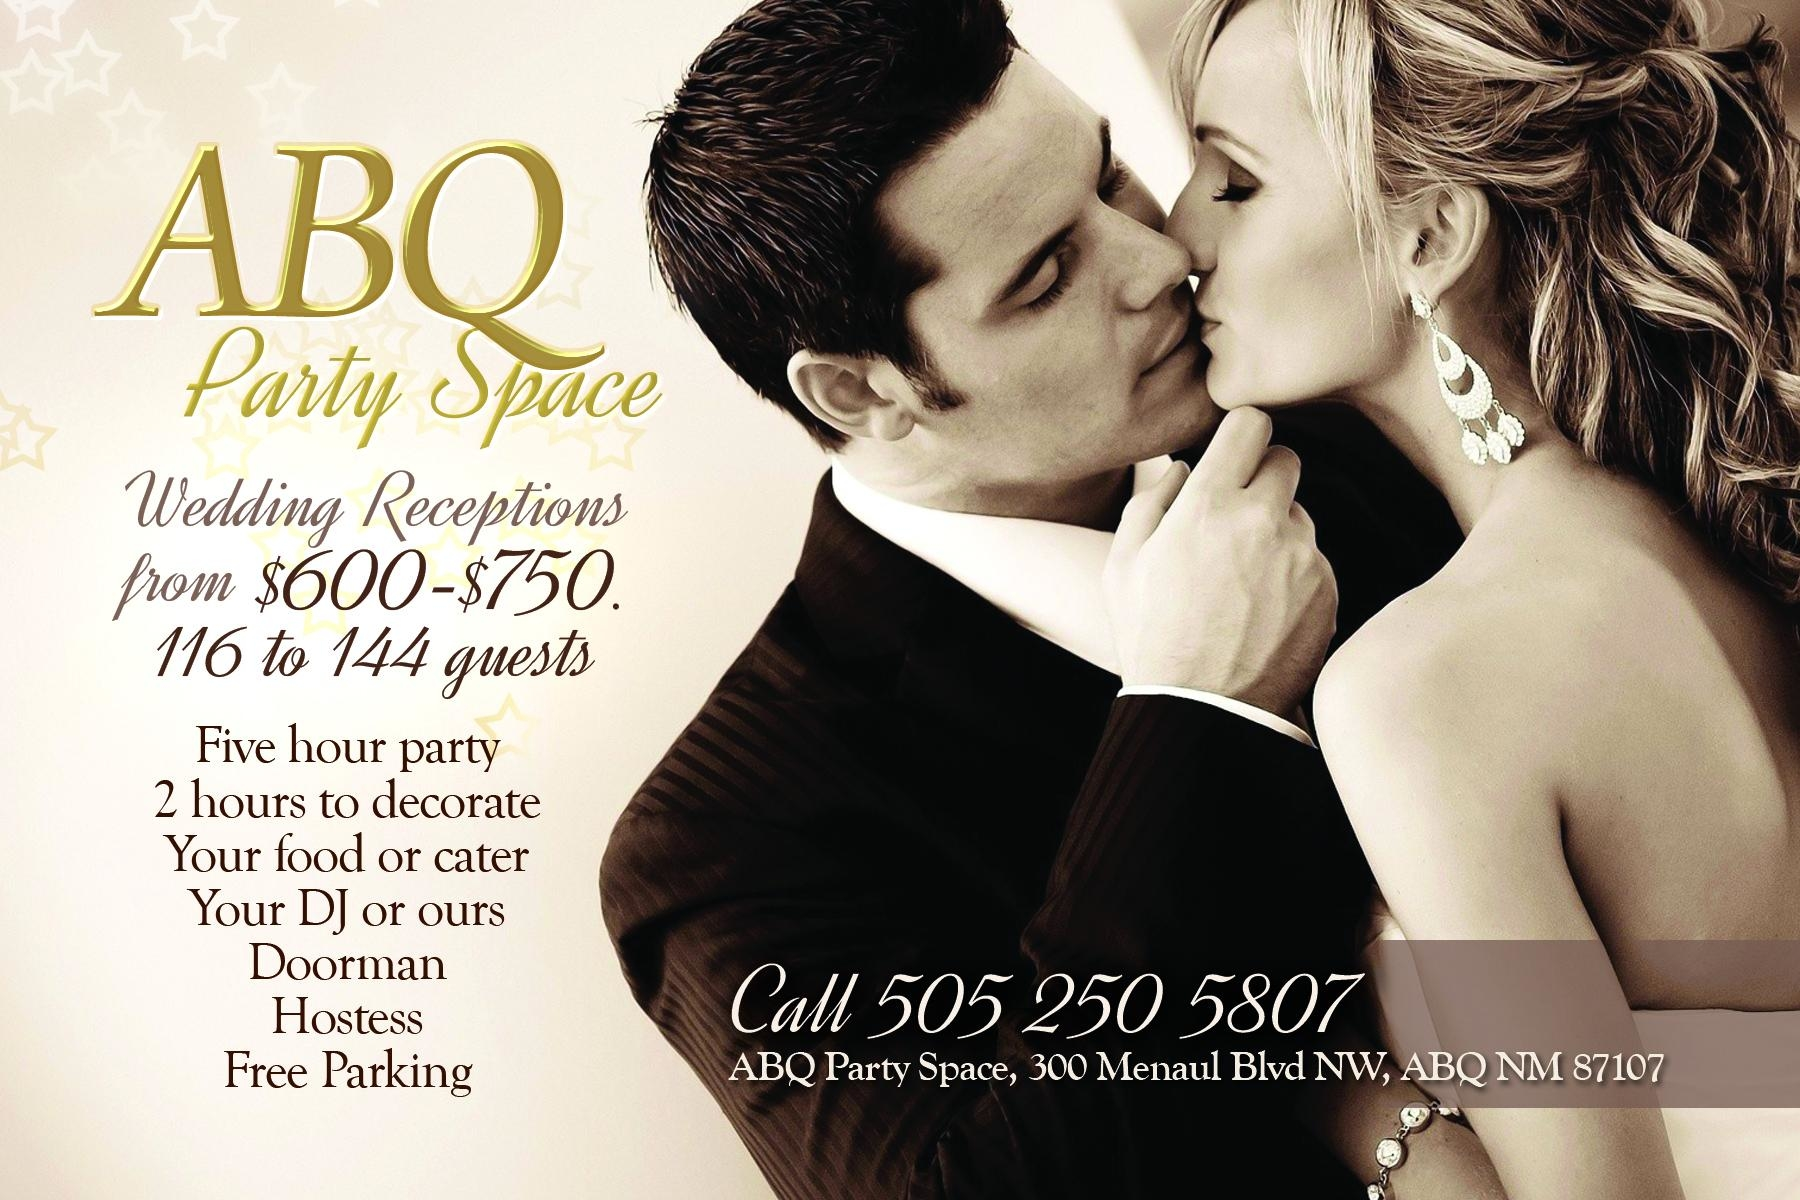 ABQPartySpace